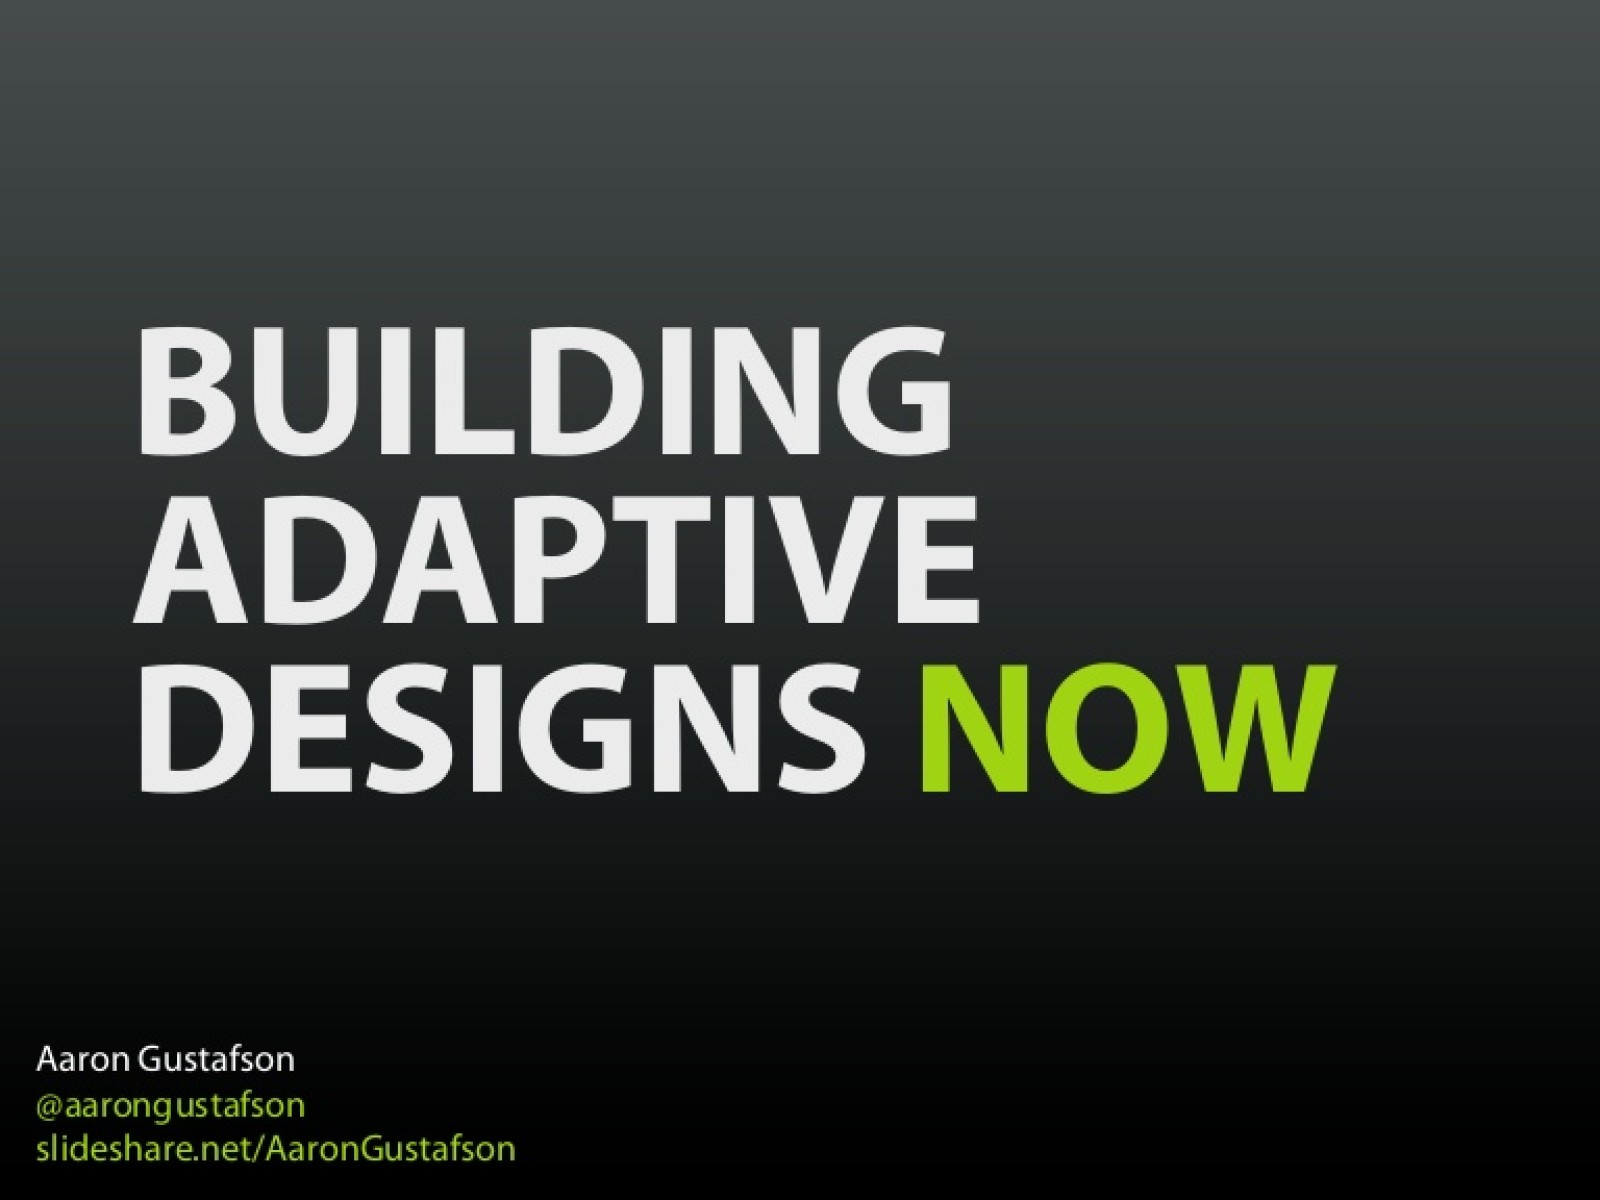 Building Adaptive Designs Now